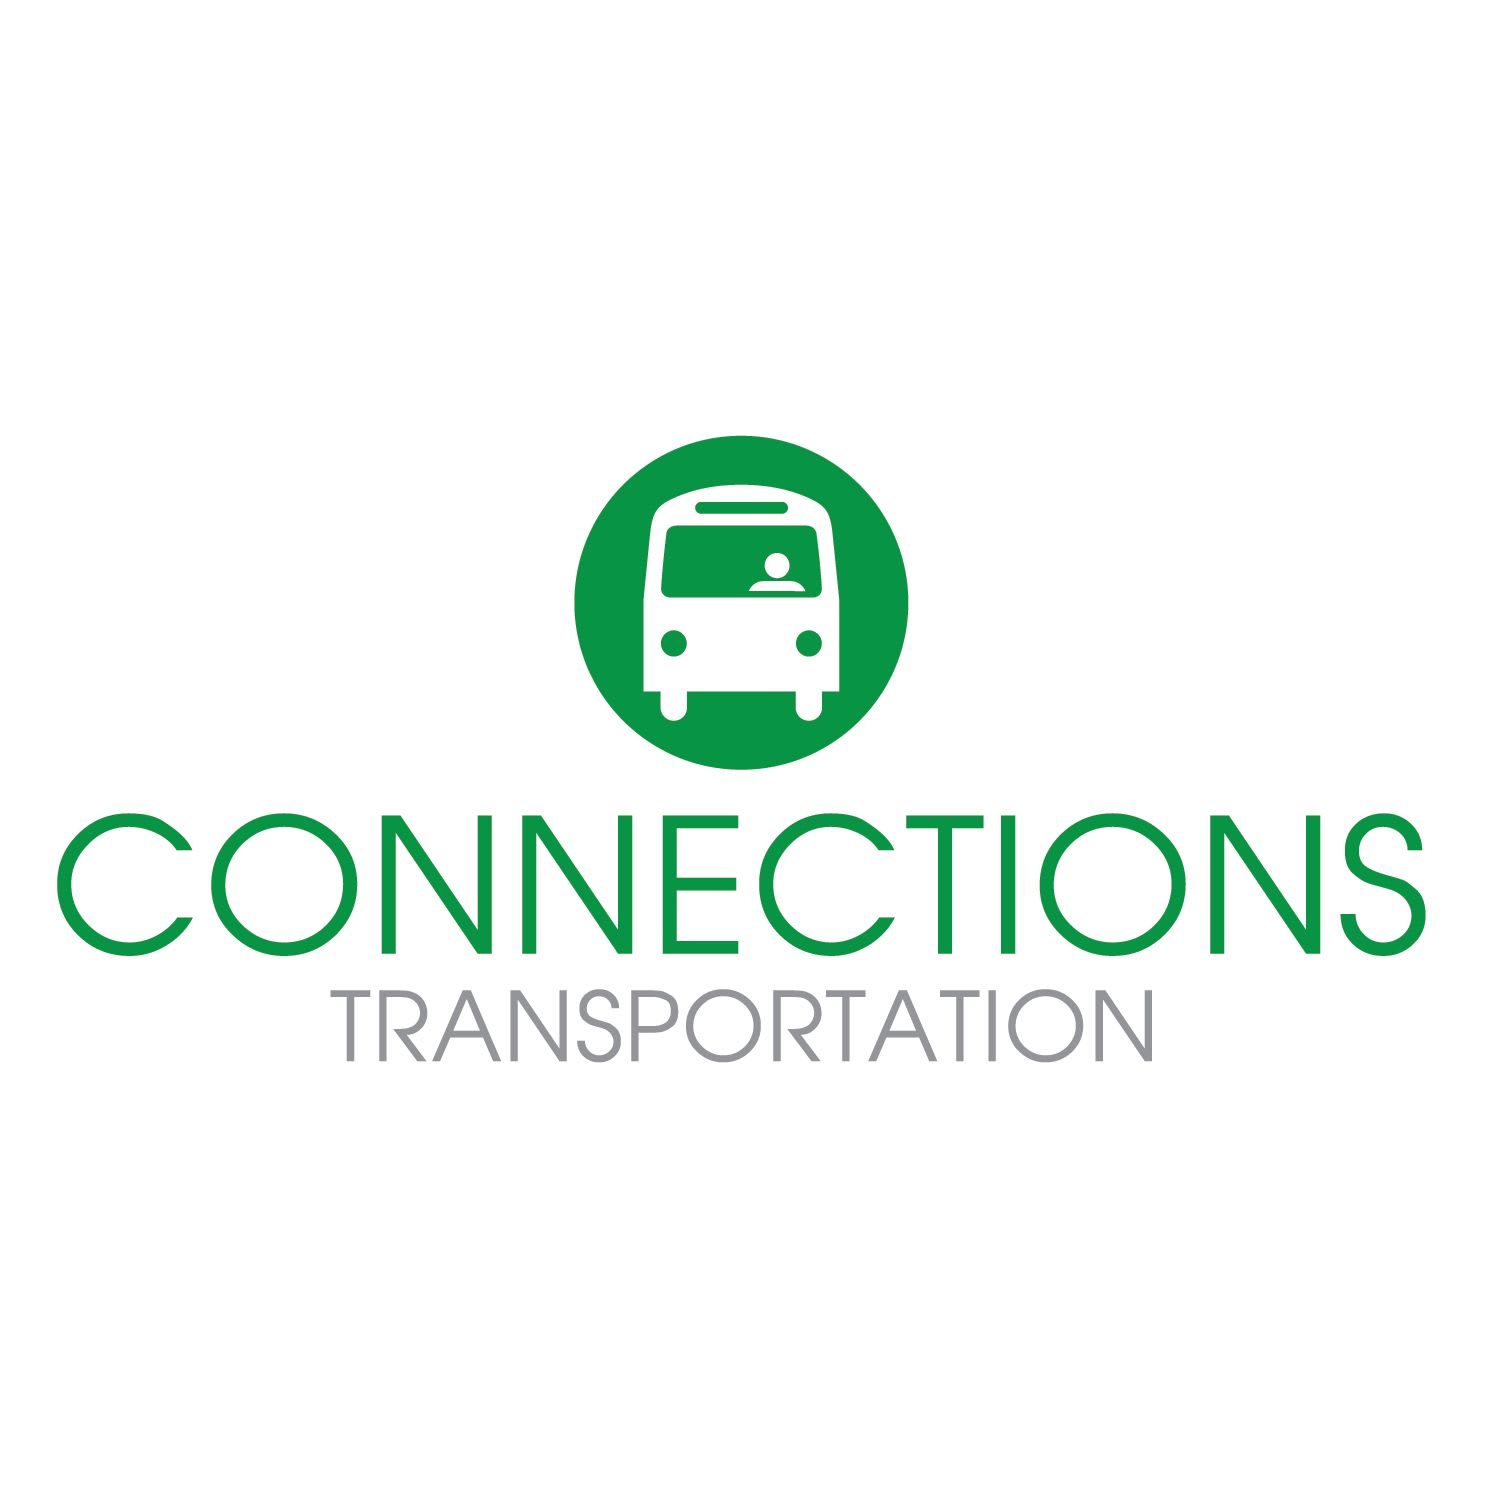 Senior living connections in Suwanee for transportation and maintenance.